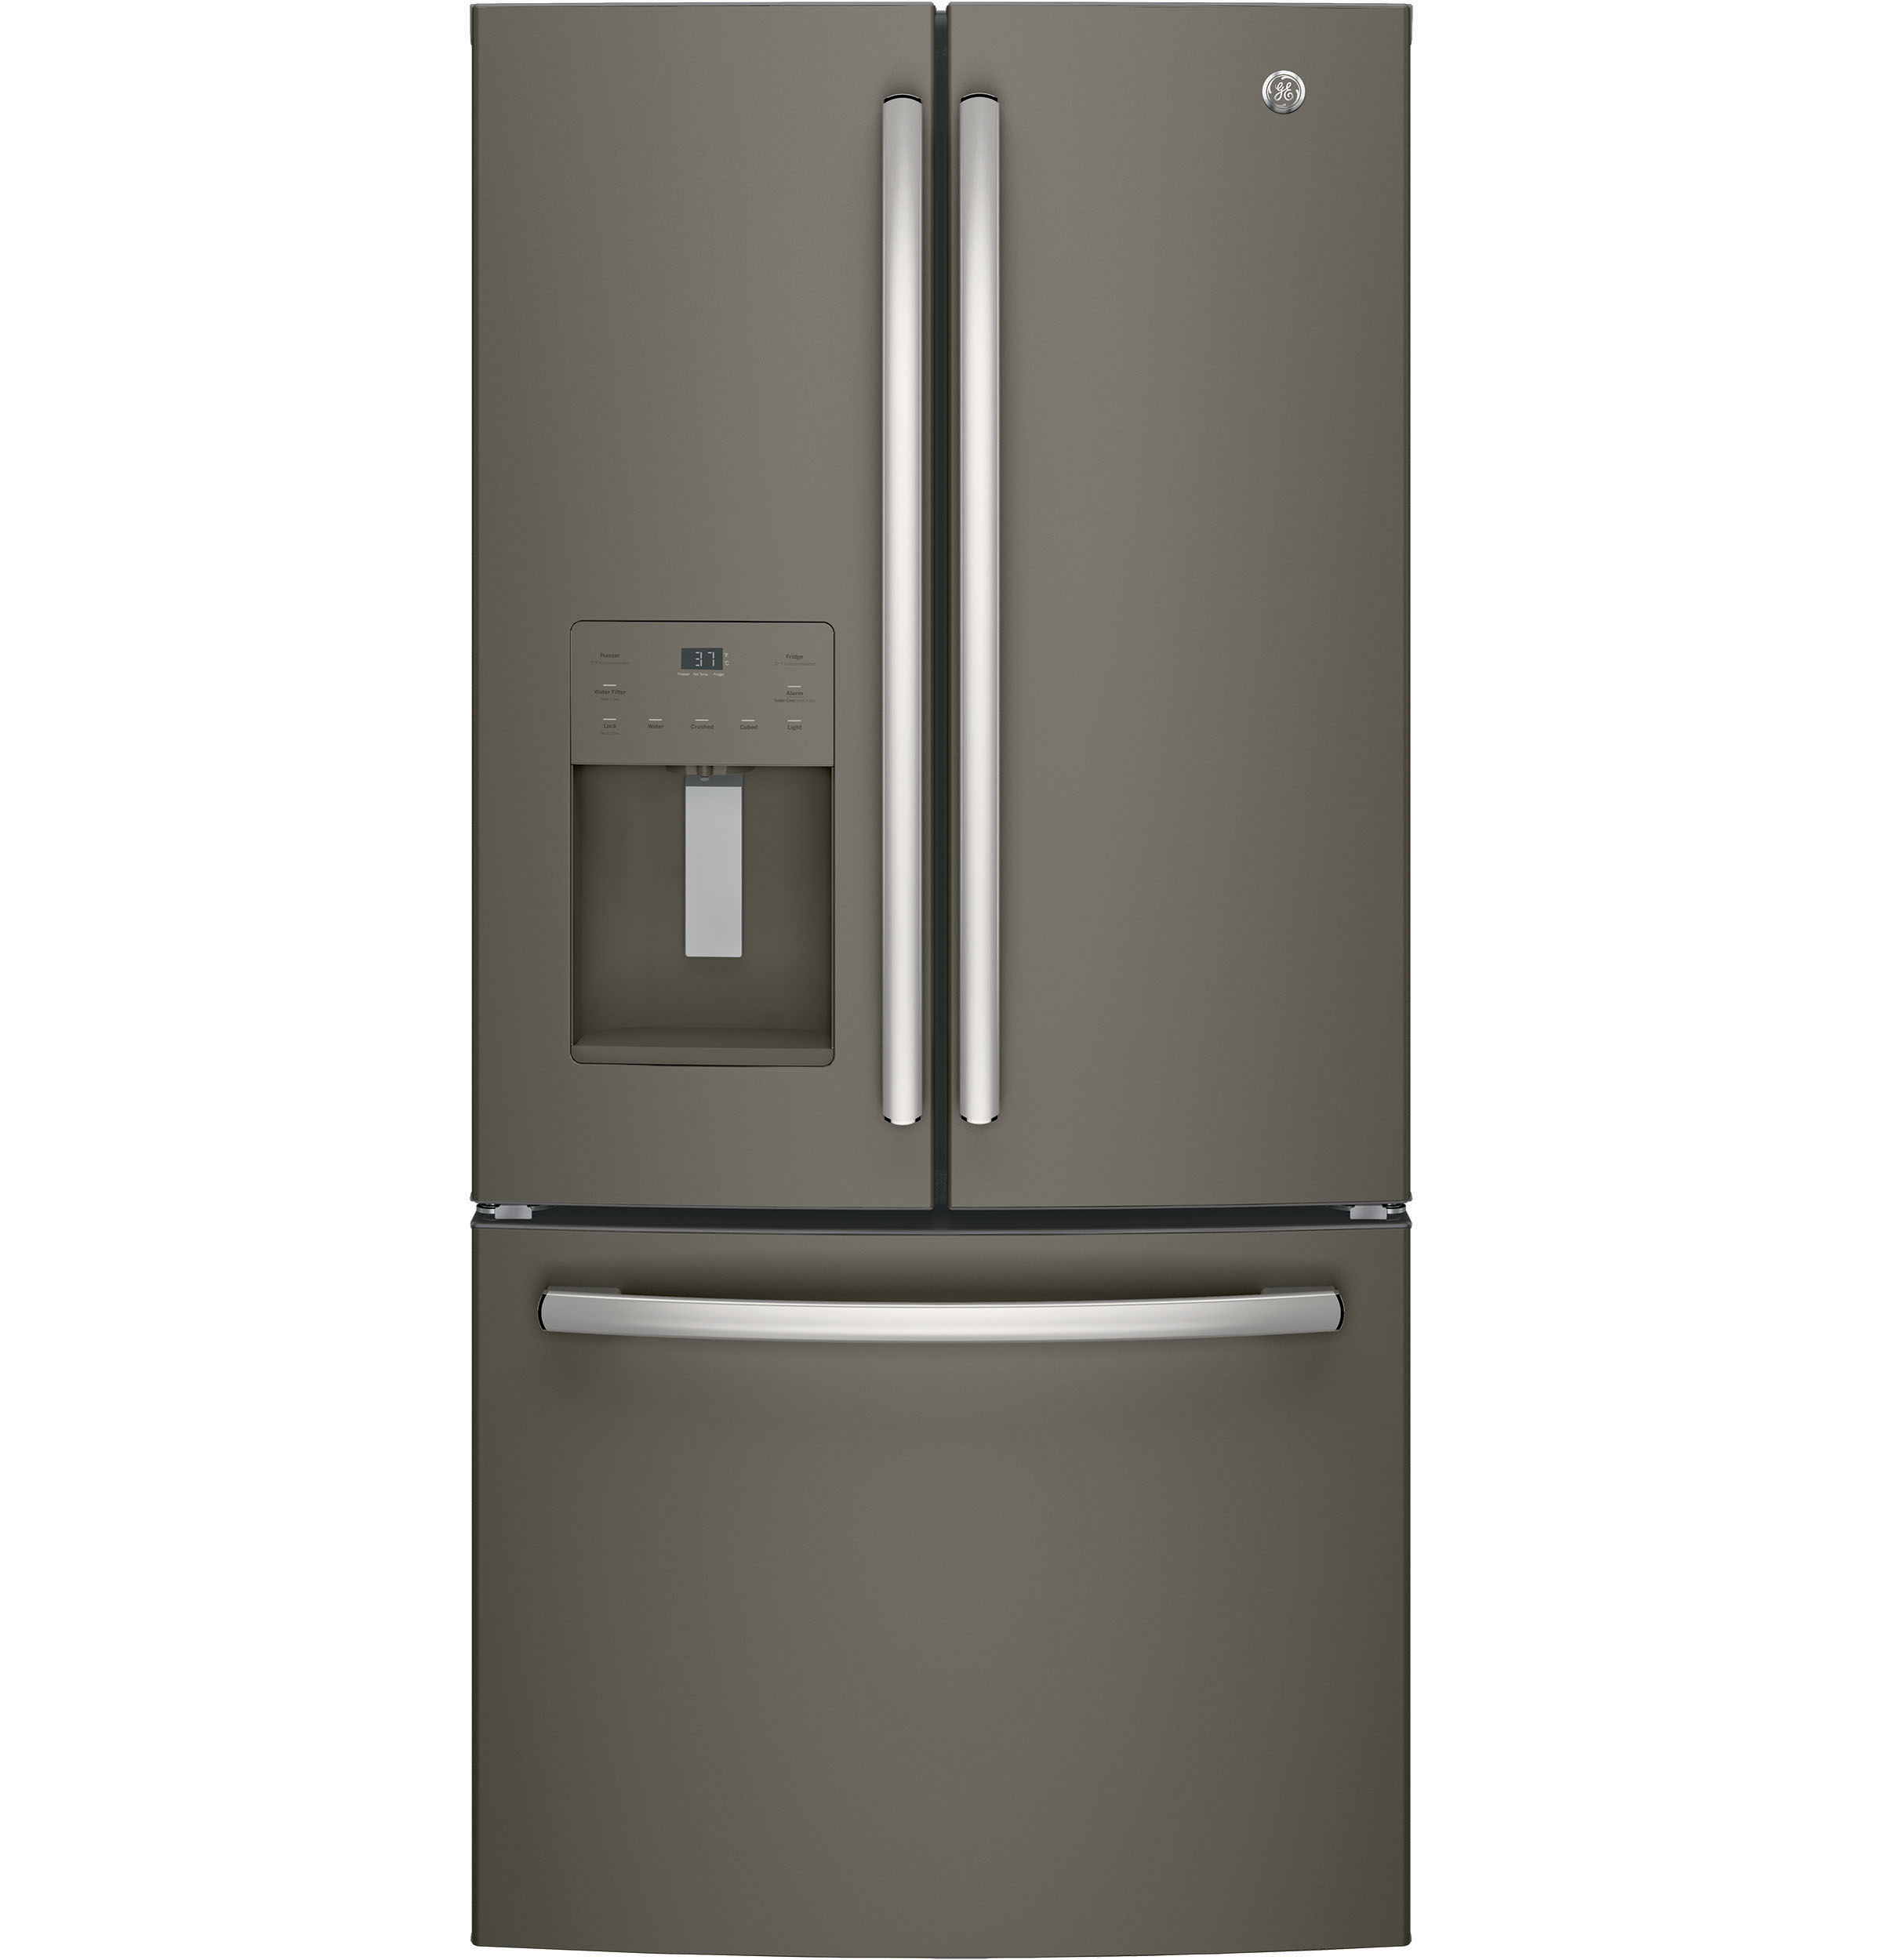 GE GE® ENERGY STAR® 23.6 Cu. Ft. French-Door Refrigerator